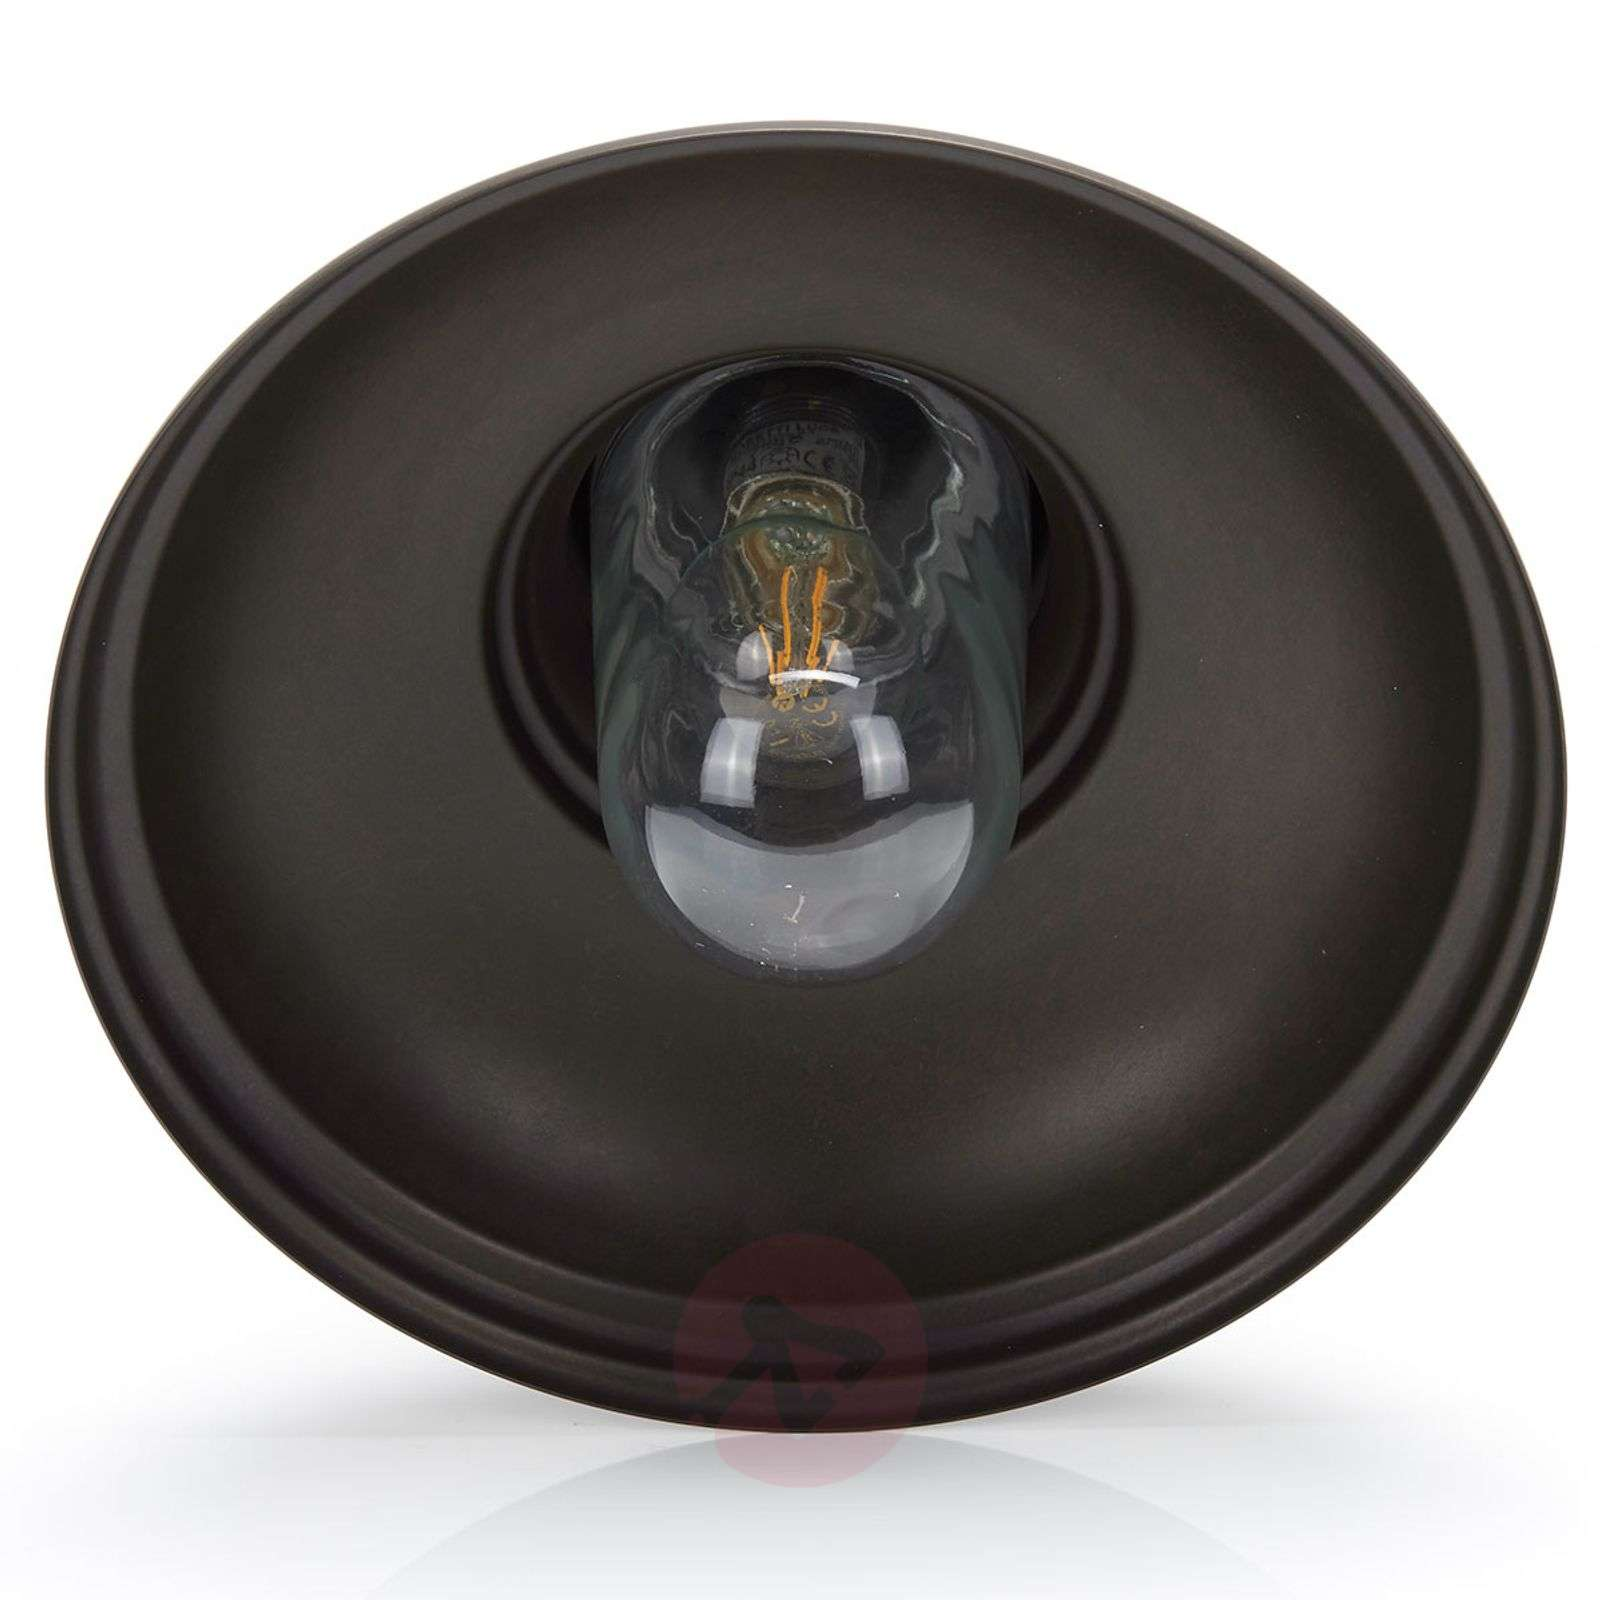 Outdoor wall light Ernesto seawater resistant-6515345-01